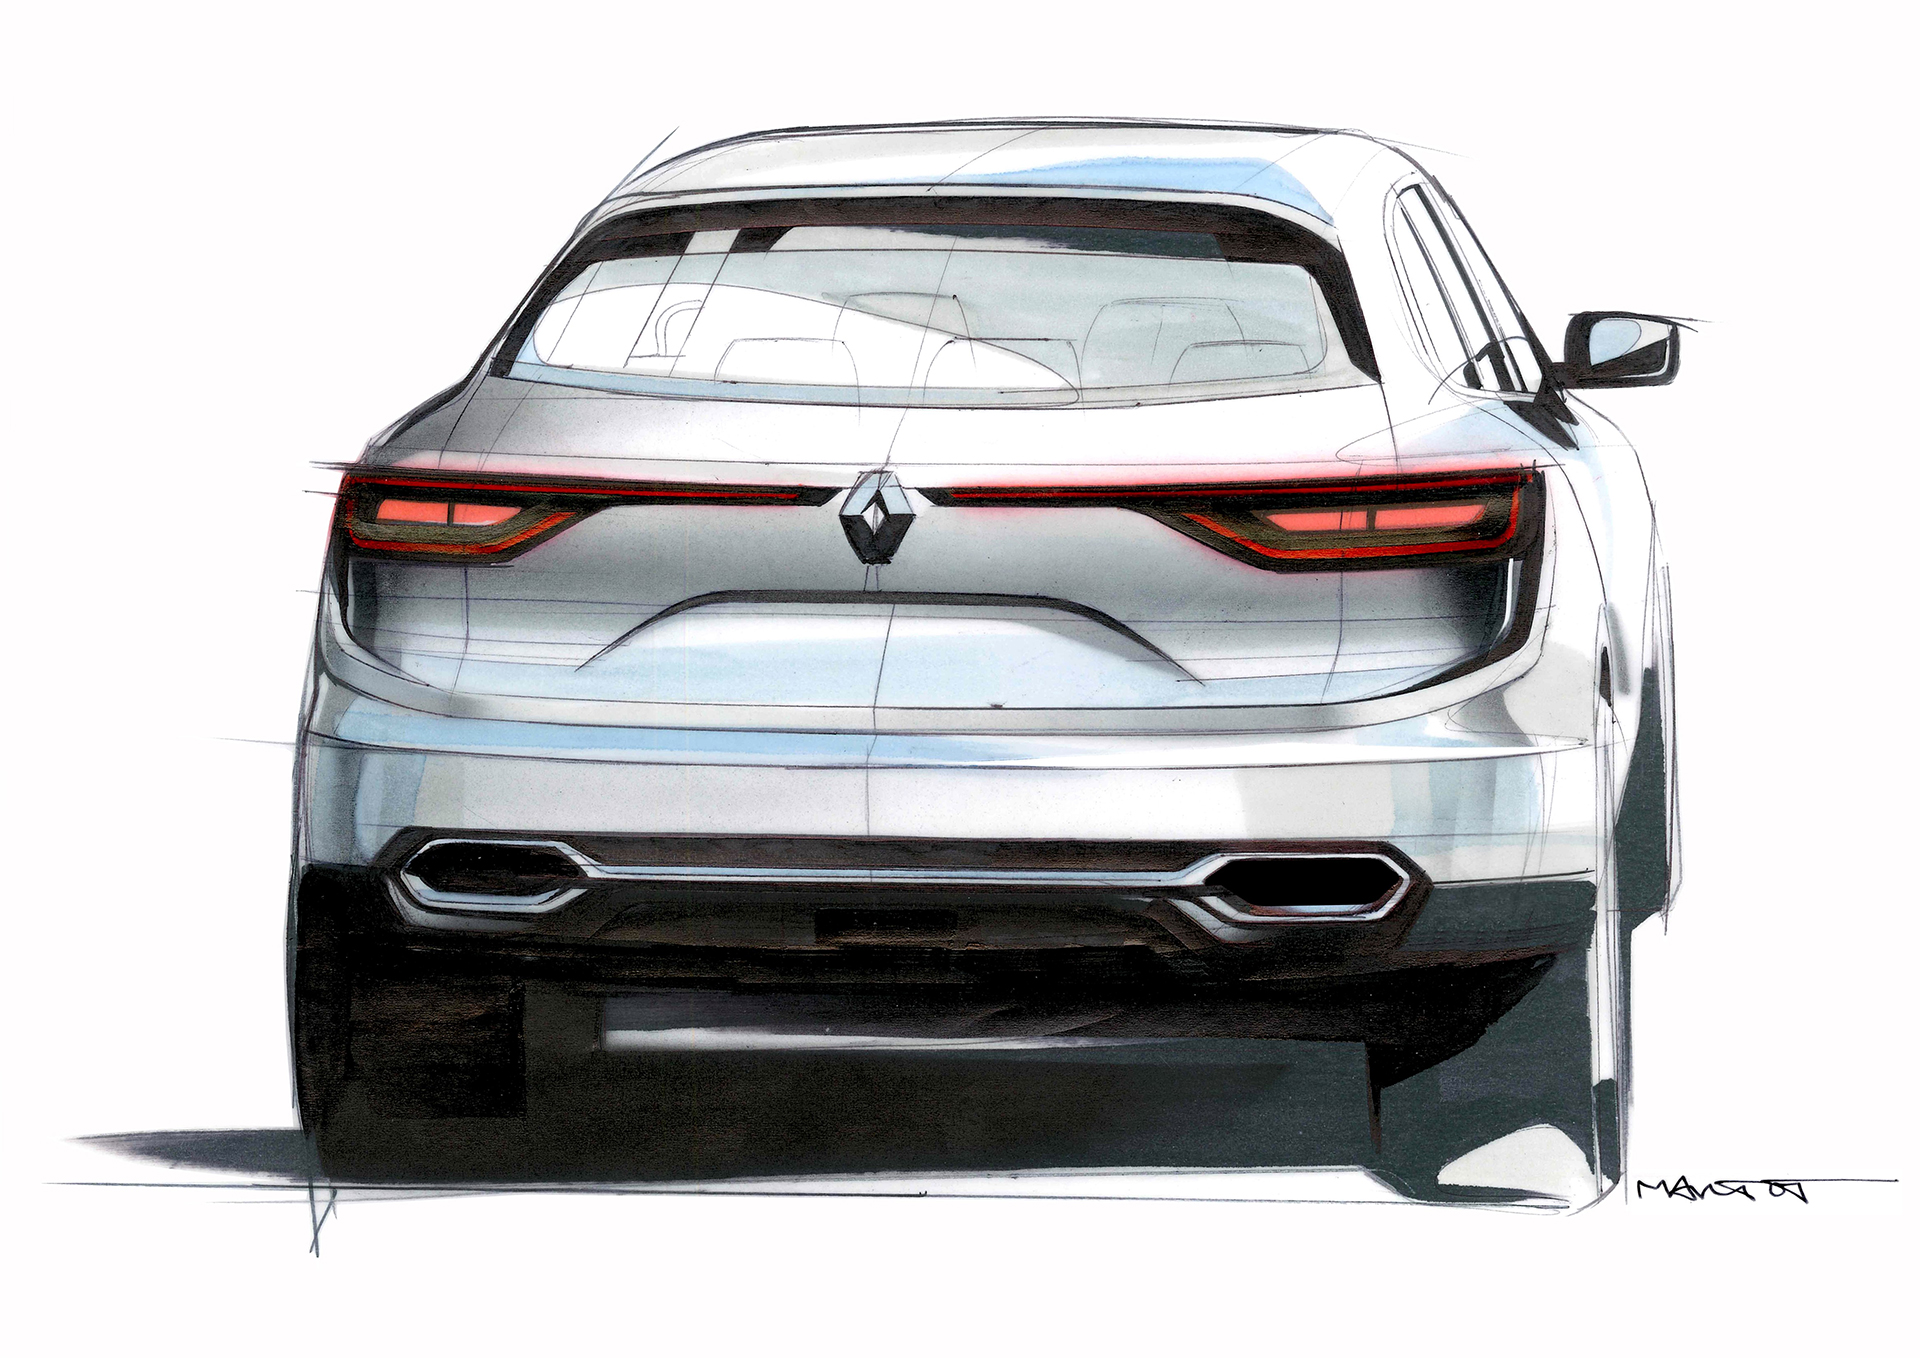 Renault Koleos - 2016 - rear sketch by Alexis Martot - Renault Design